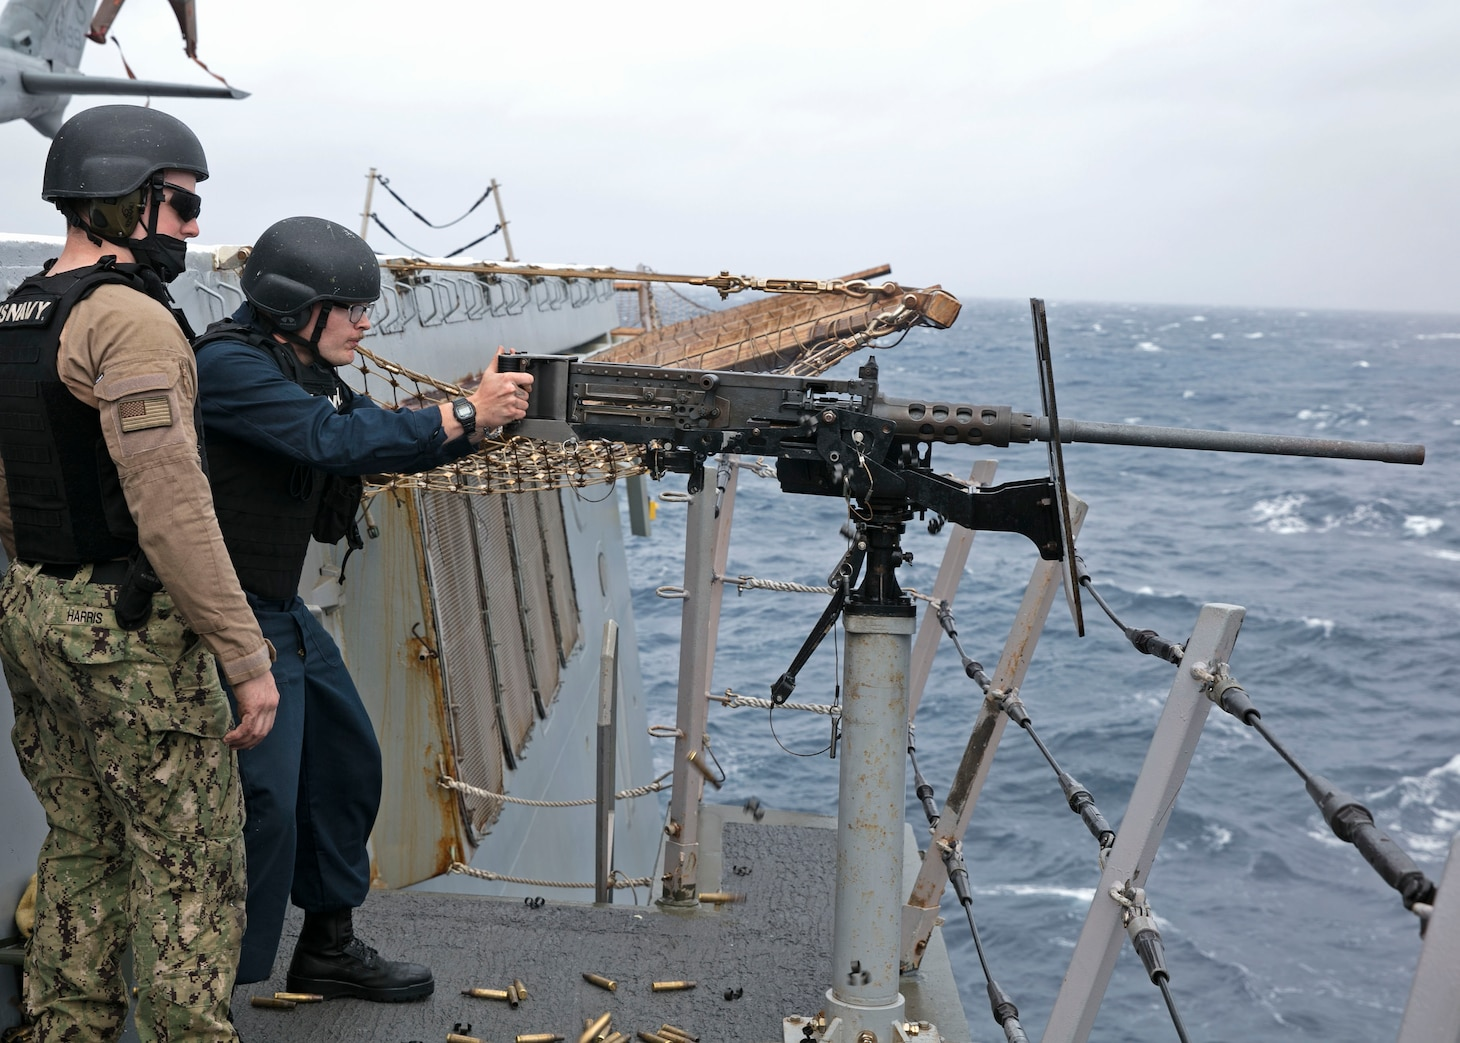 Seaman Ethan Valentine , right, and Gunner's Mate 2nd Class Dylan Harris assigned to the amphibious transport dock ship USS San Antonio (LPD 17) watches as Valentine fires a M-2 .50 caliber machine gun on the ship's flight deck, April 1, 2021.